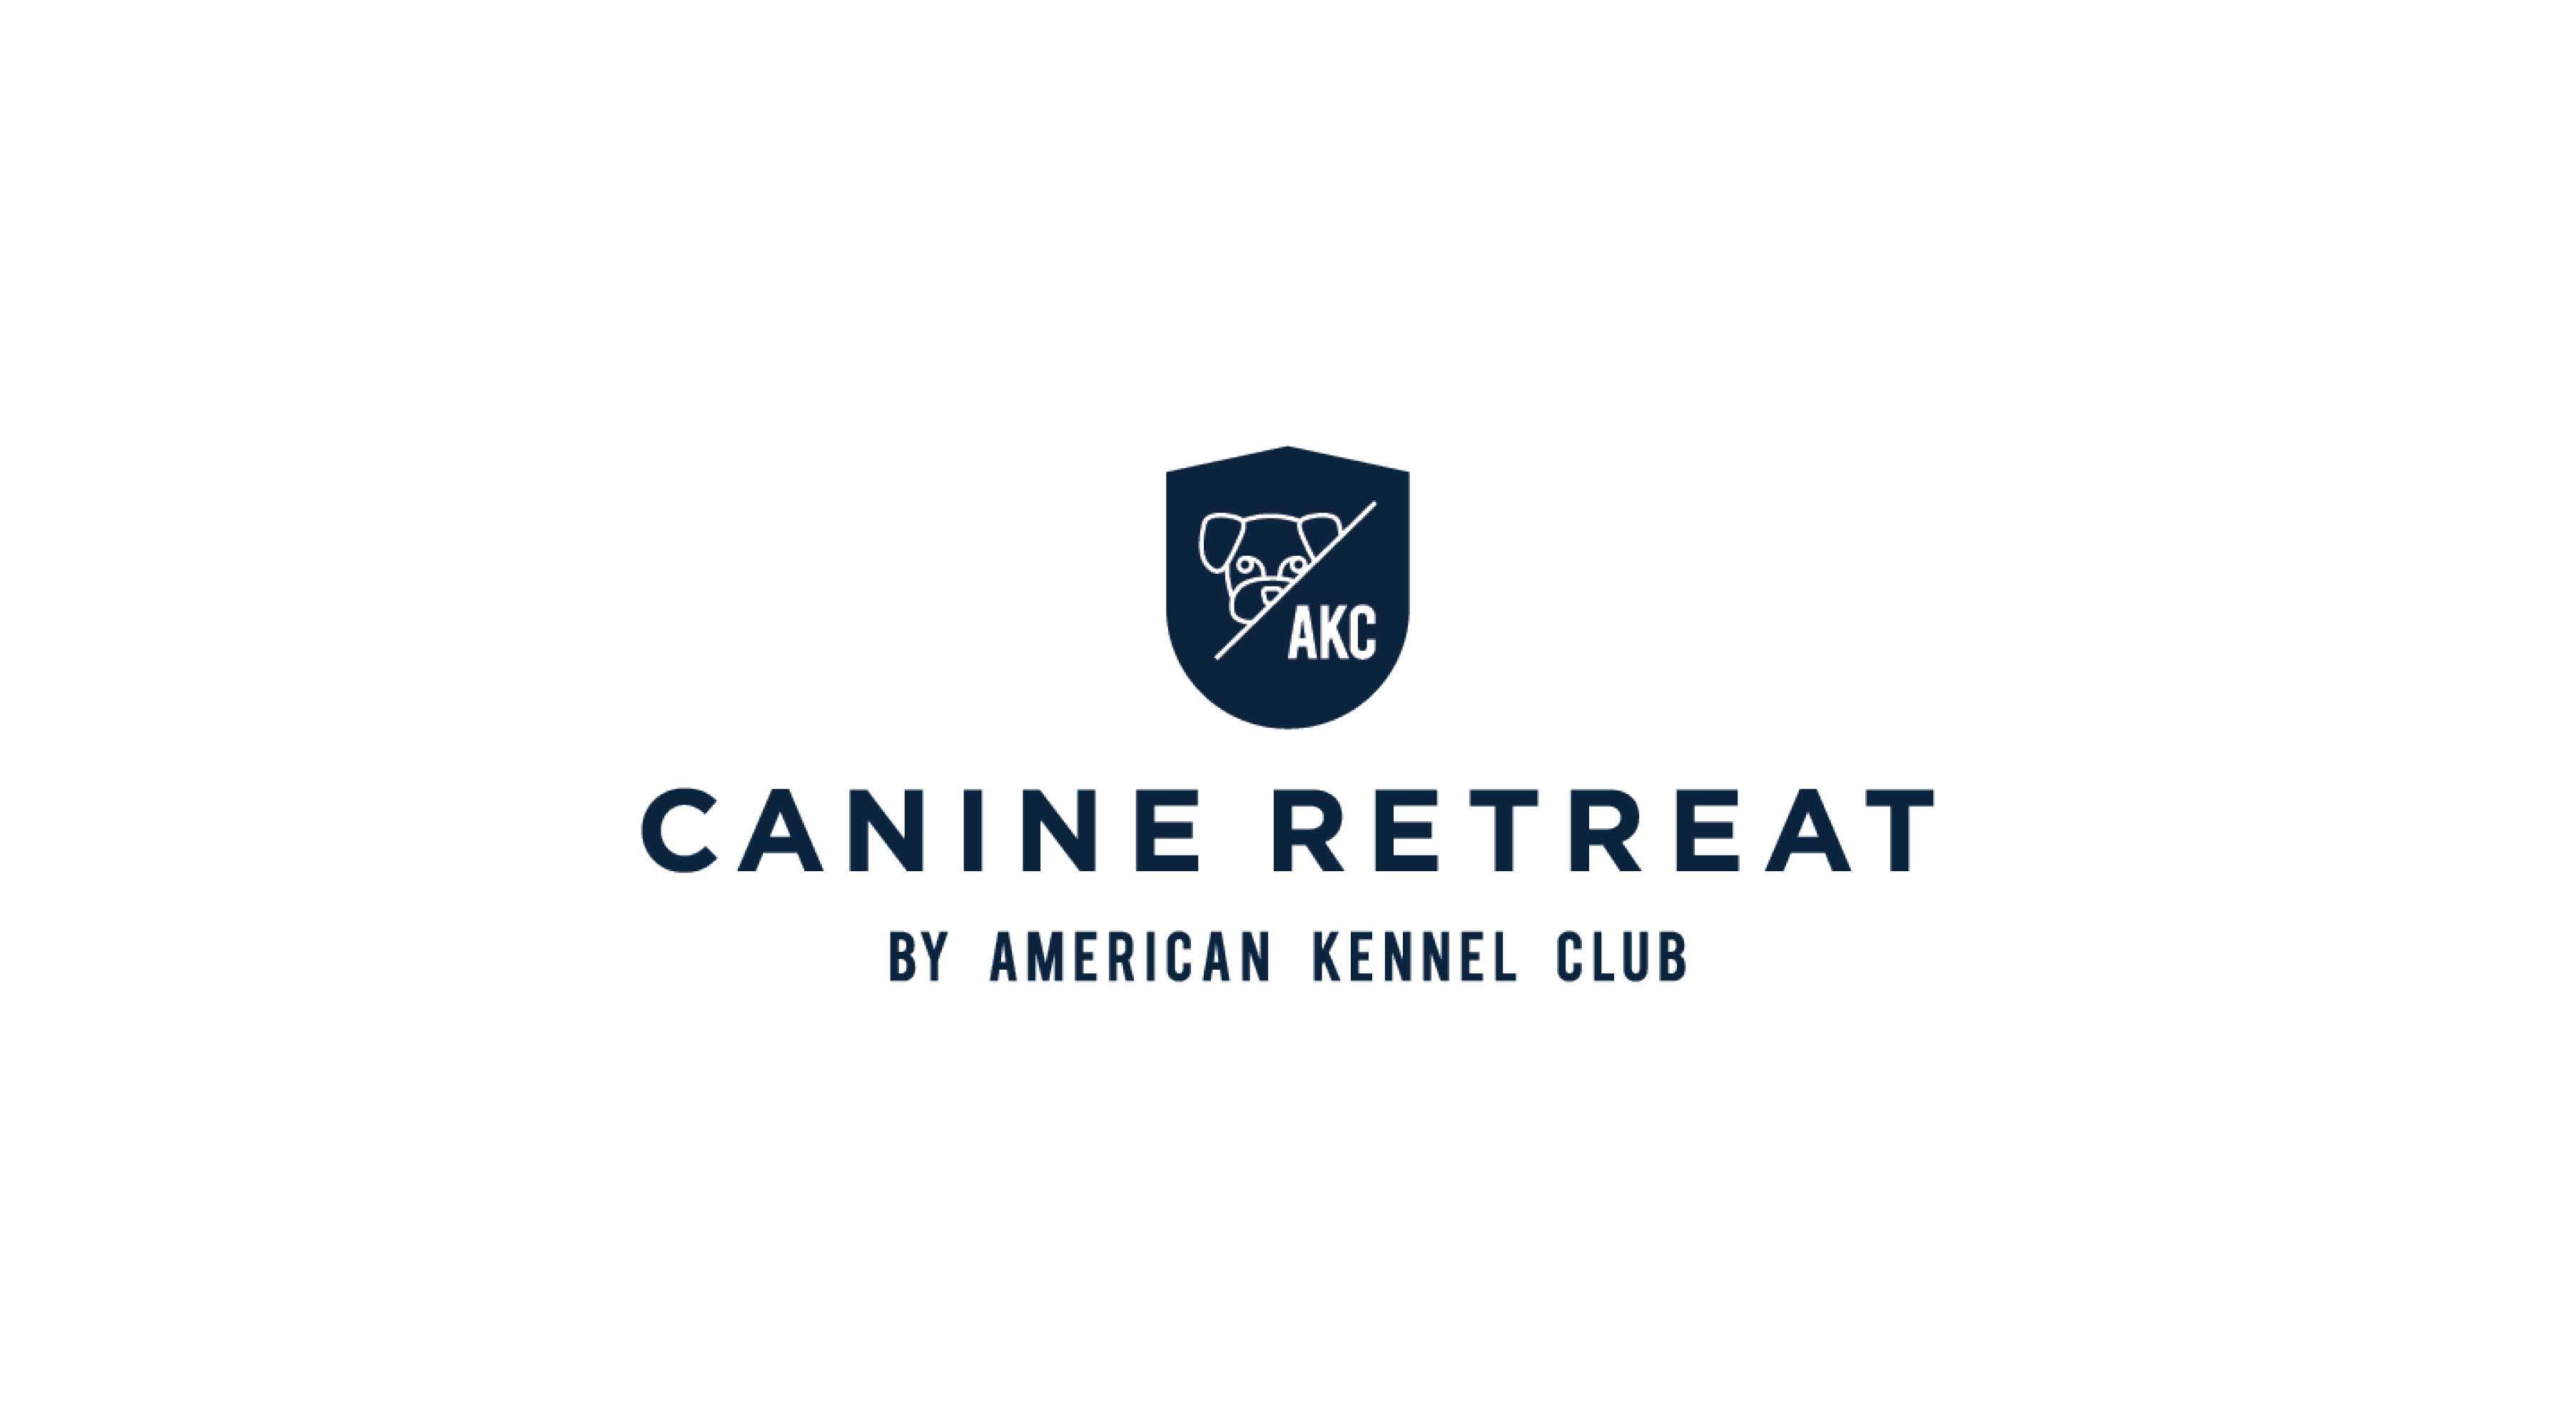 AKC Canine Retreat